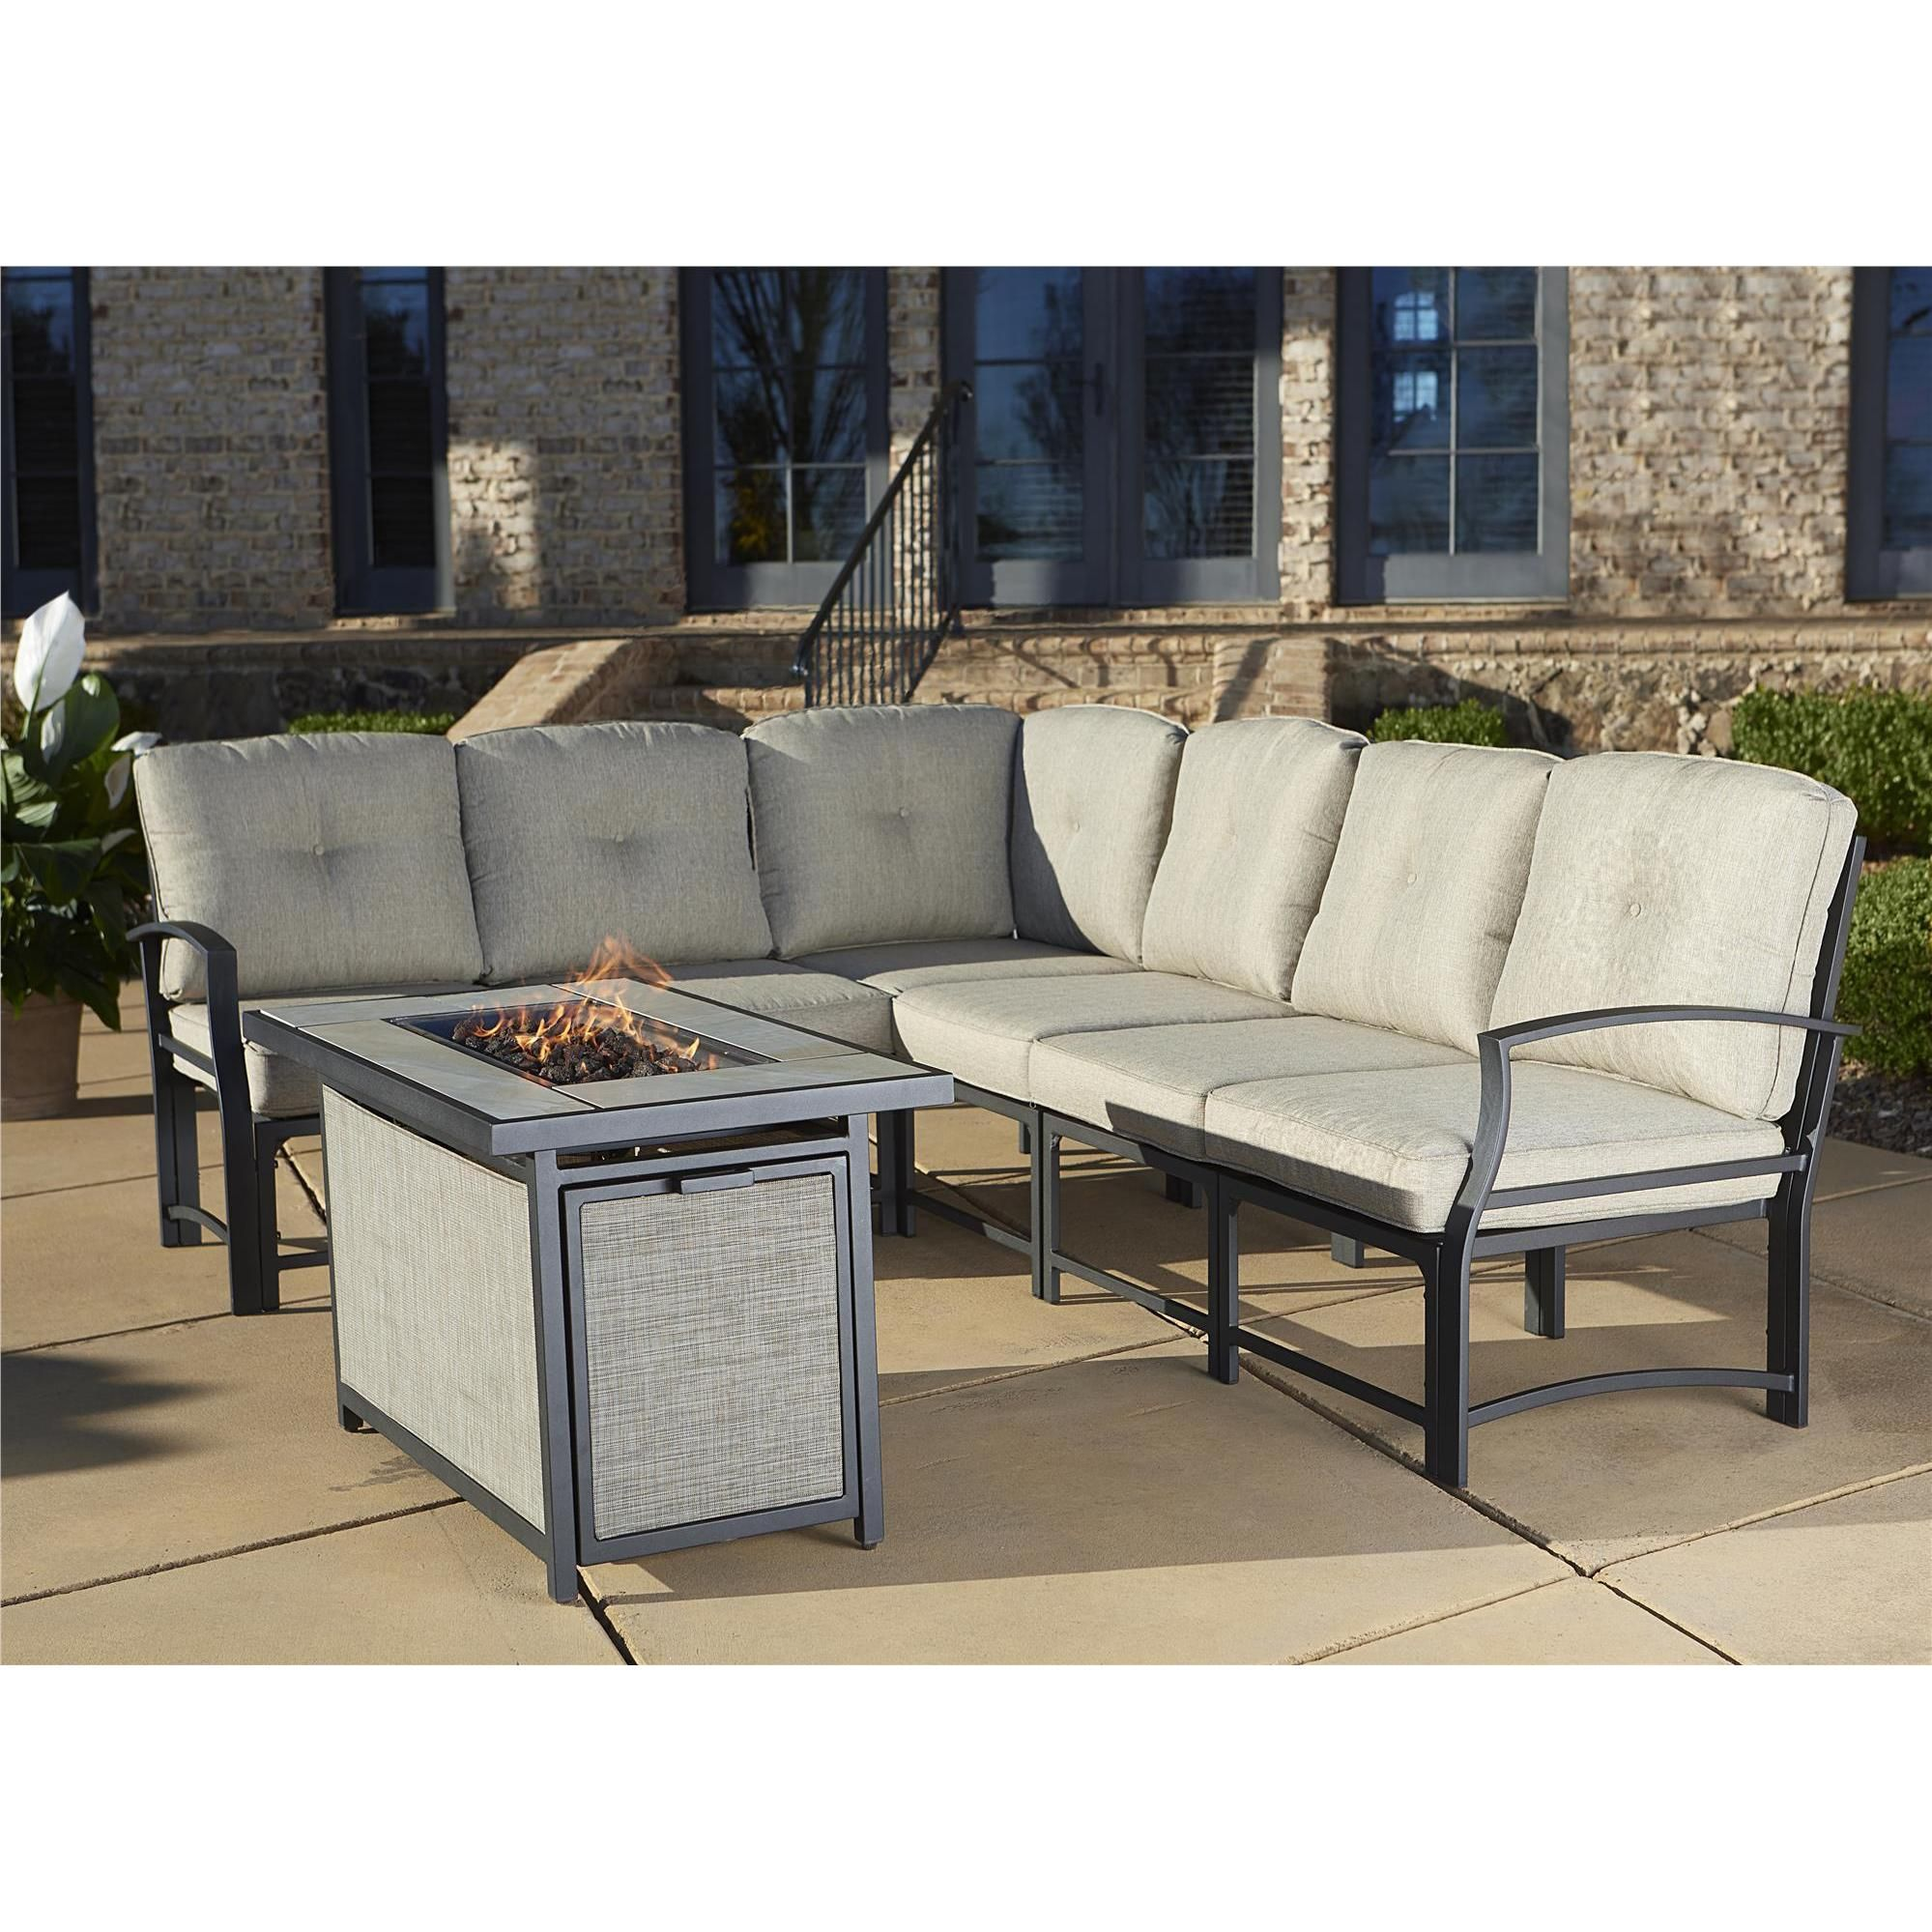 Cosco Outdoor Aluminum Sofa Sectional Patio Set With Gas Fire Pit Table (7  Pc Seating